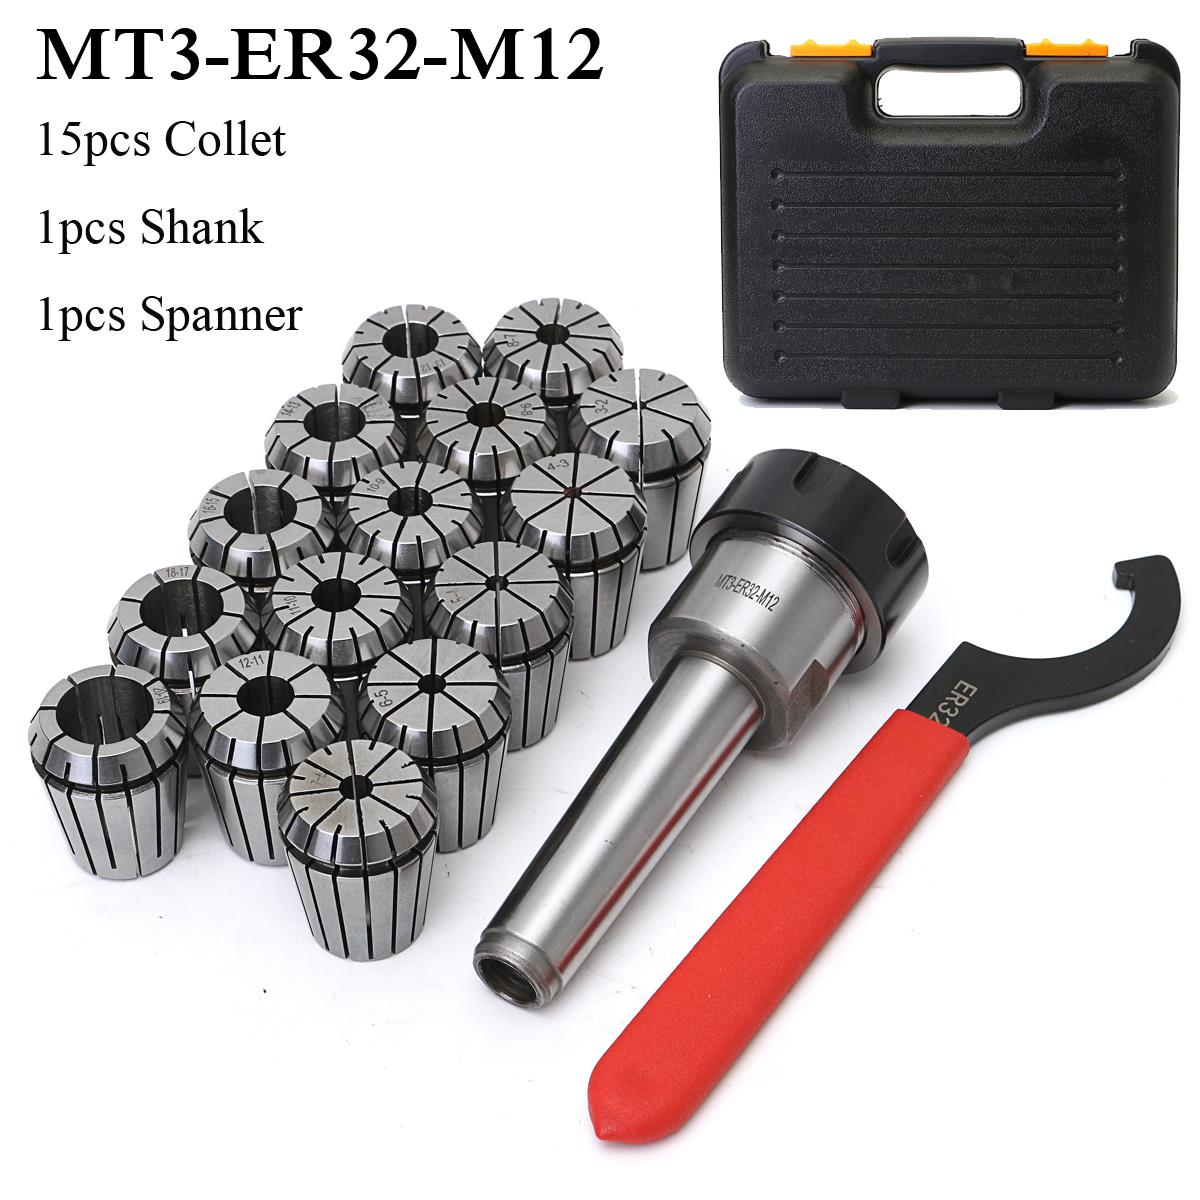 New MT3 ER32 M12 Collet Chuck Taper Holder + 15Pcs ER32 Spring Collet 3-20mm Spanner